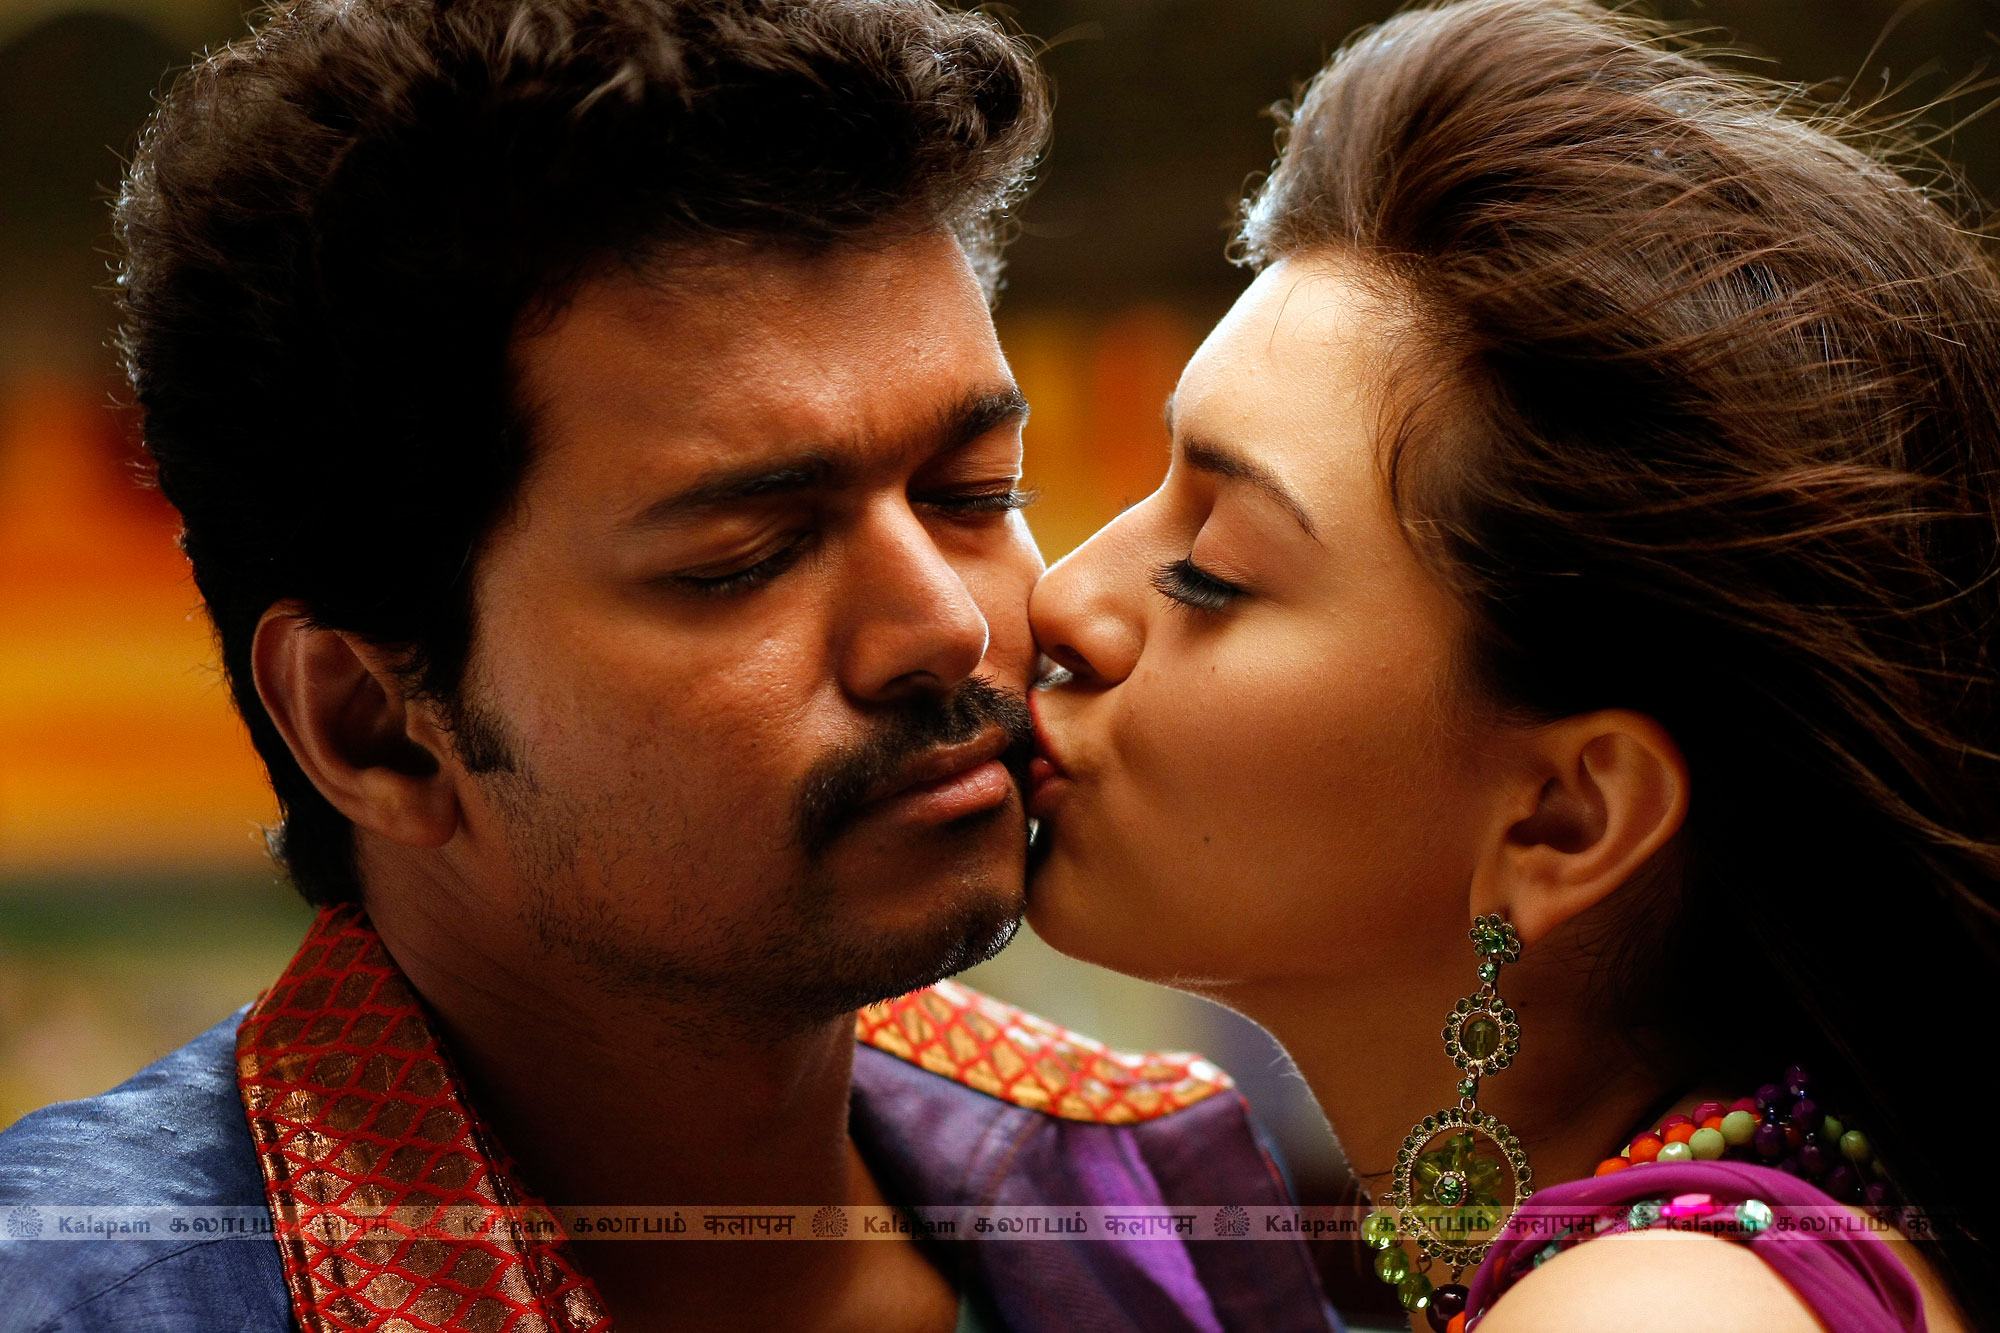 Velayutham hd tamil movie 2011 hd marketplacebackup - Vijay high quality images download ...